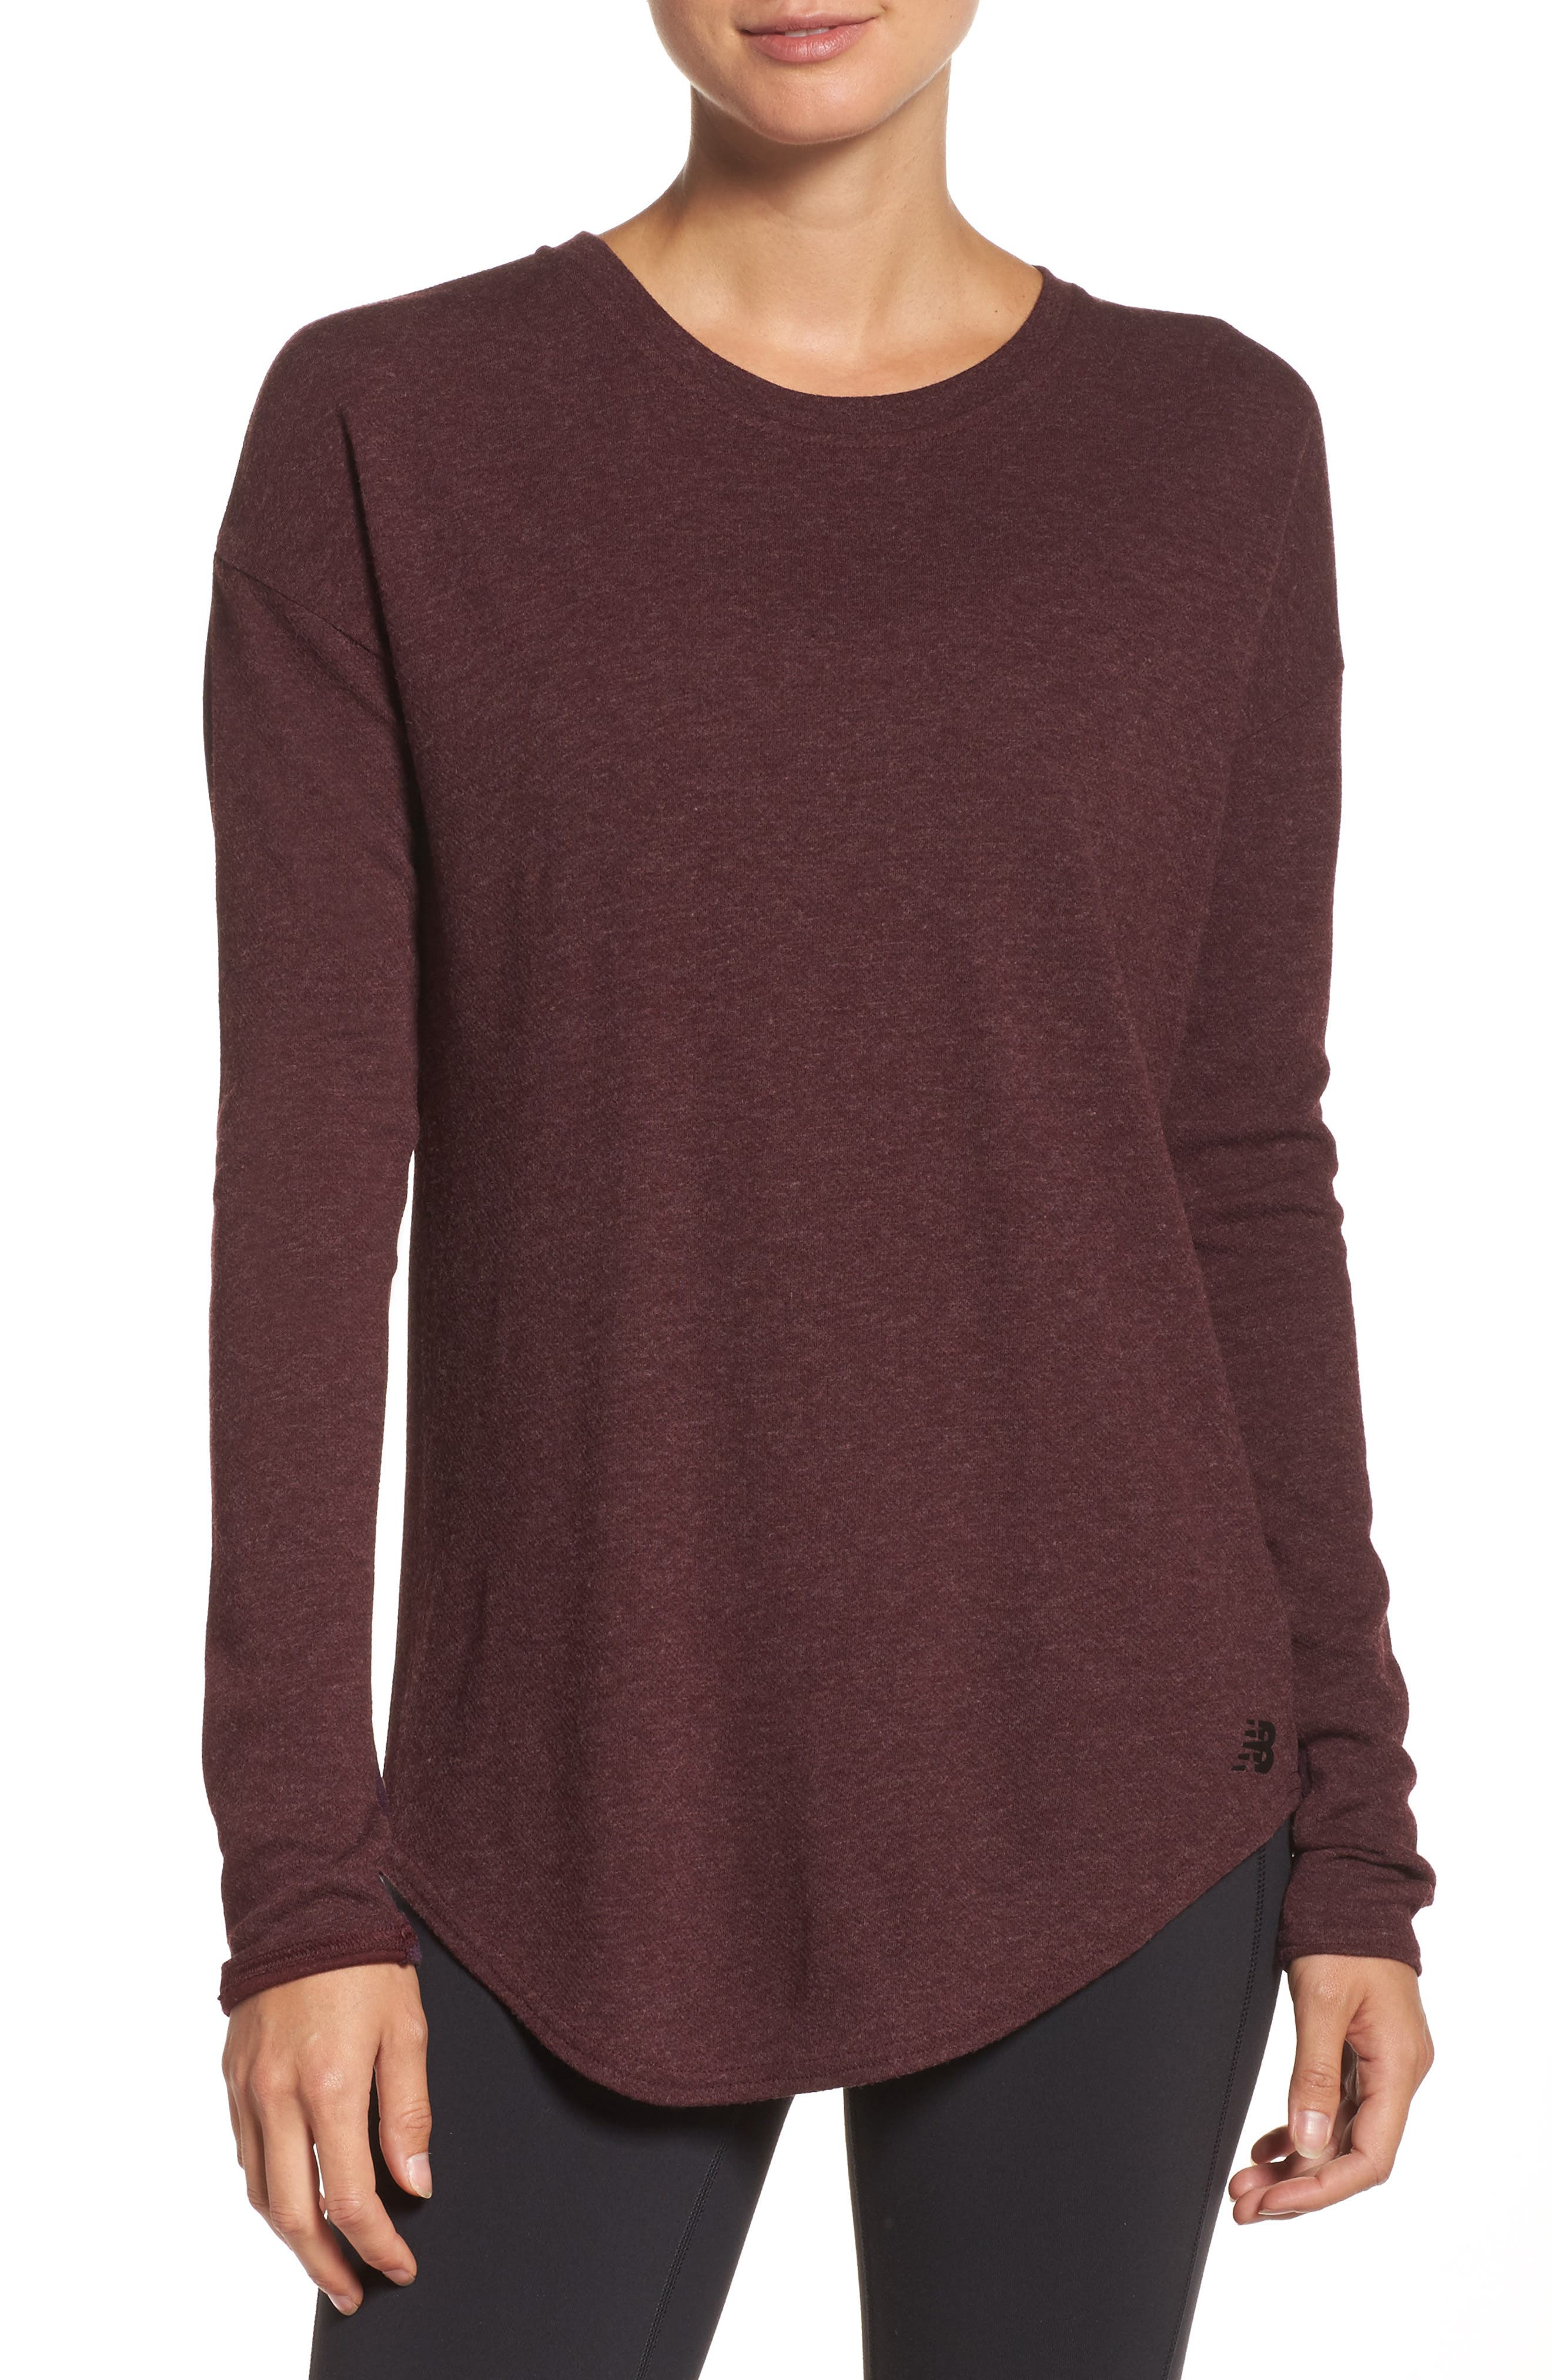 Alternate Image 1 Selected - New Balance 247 Luxe Long Sleeve Tee